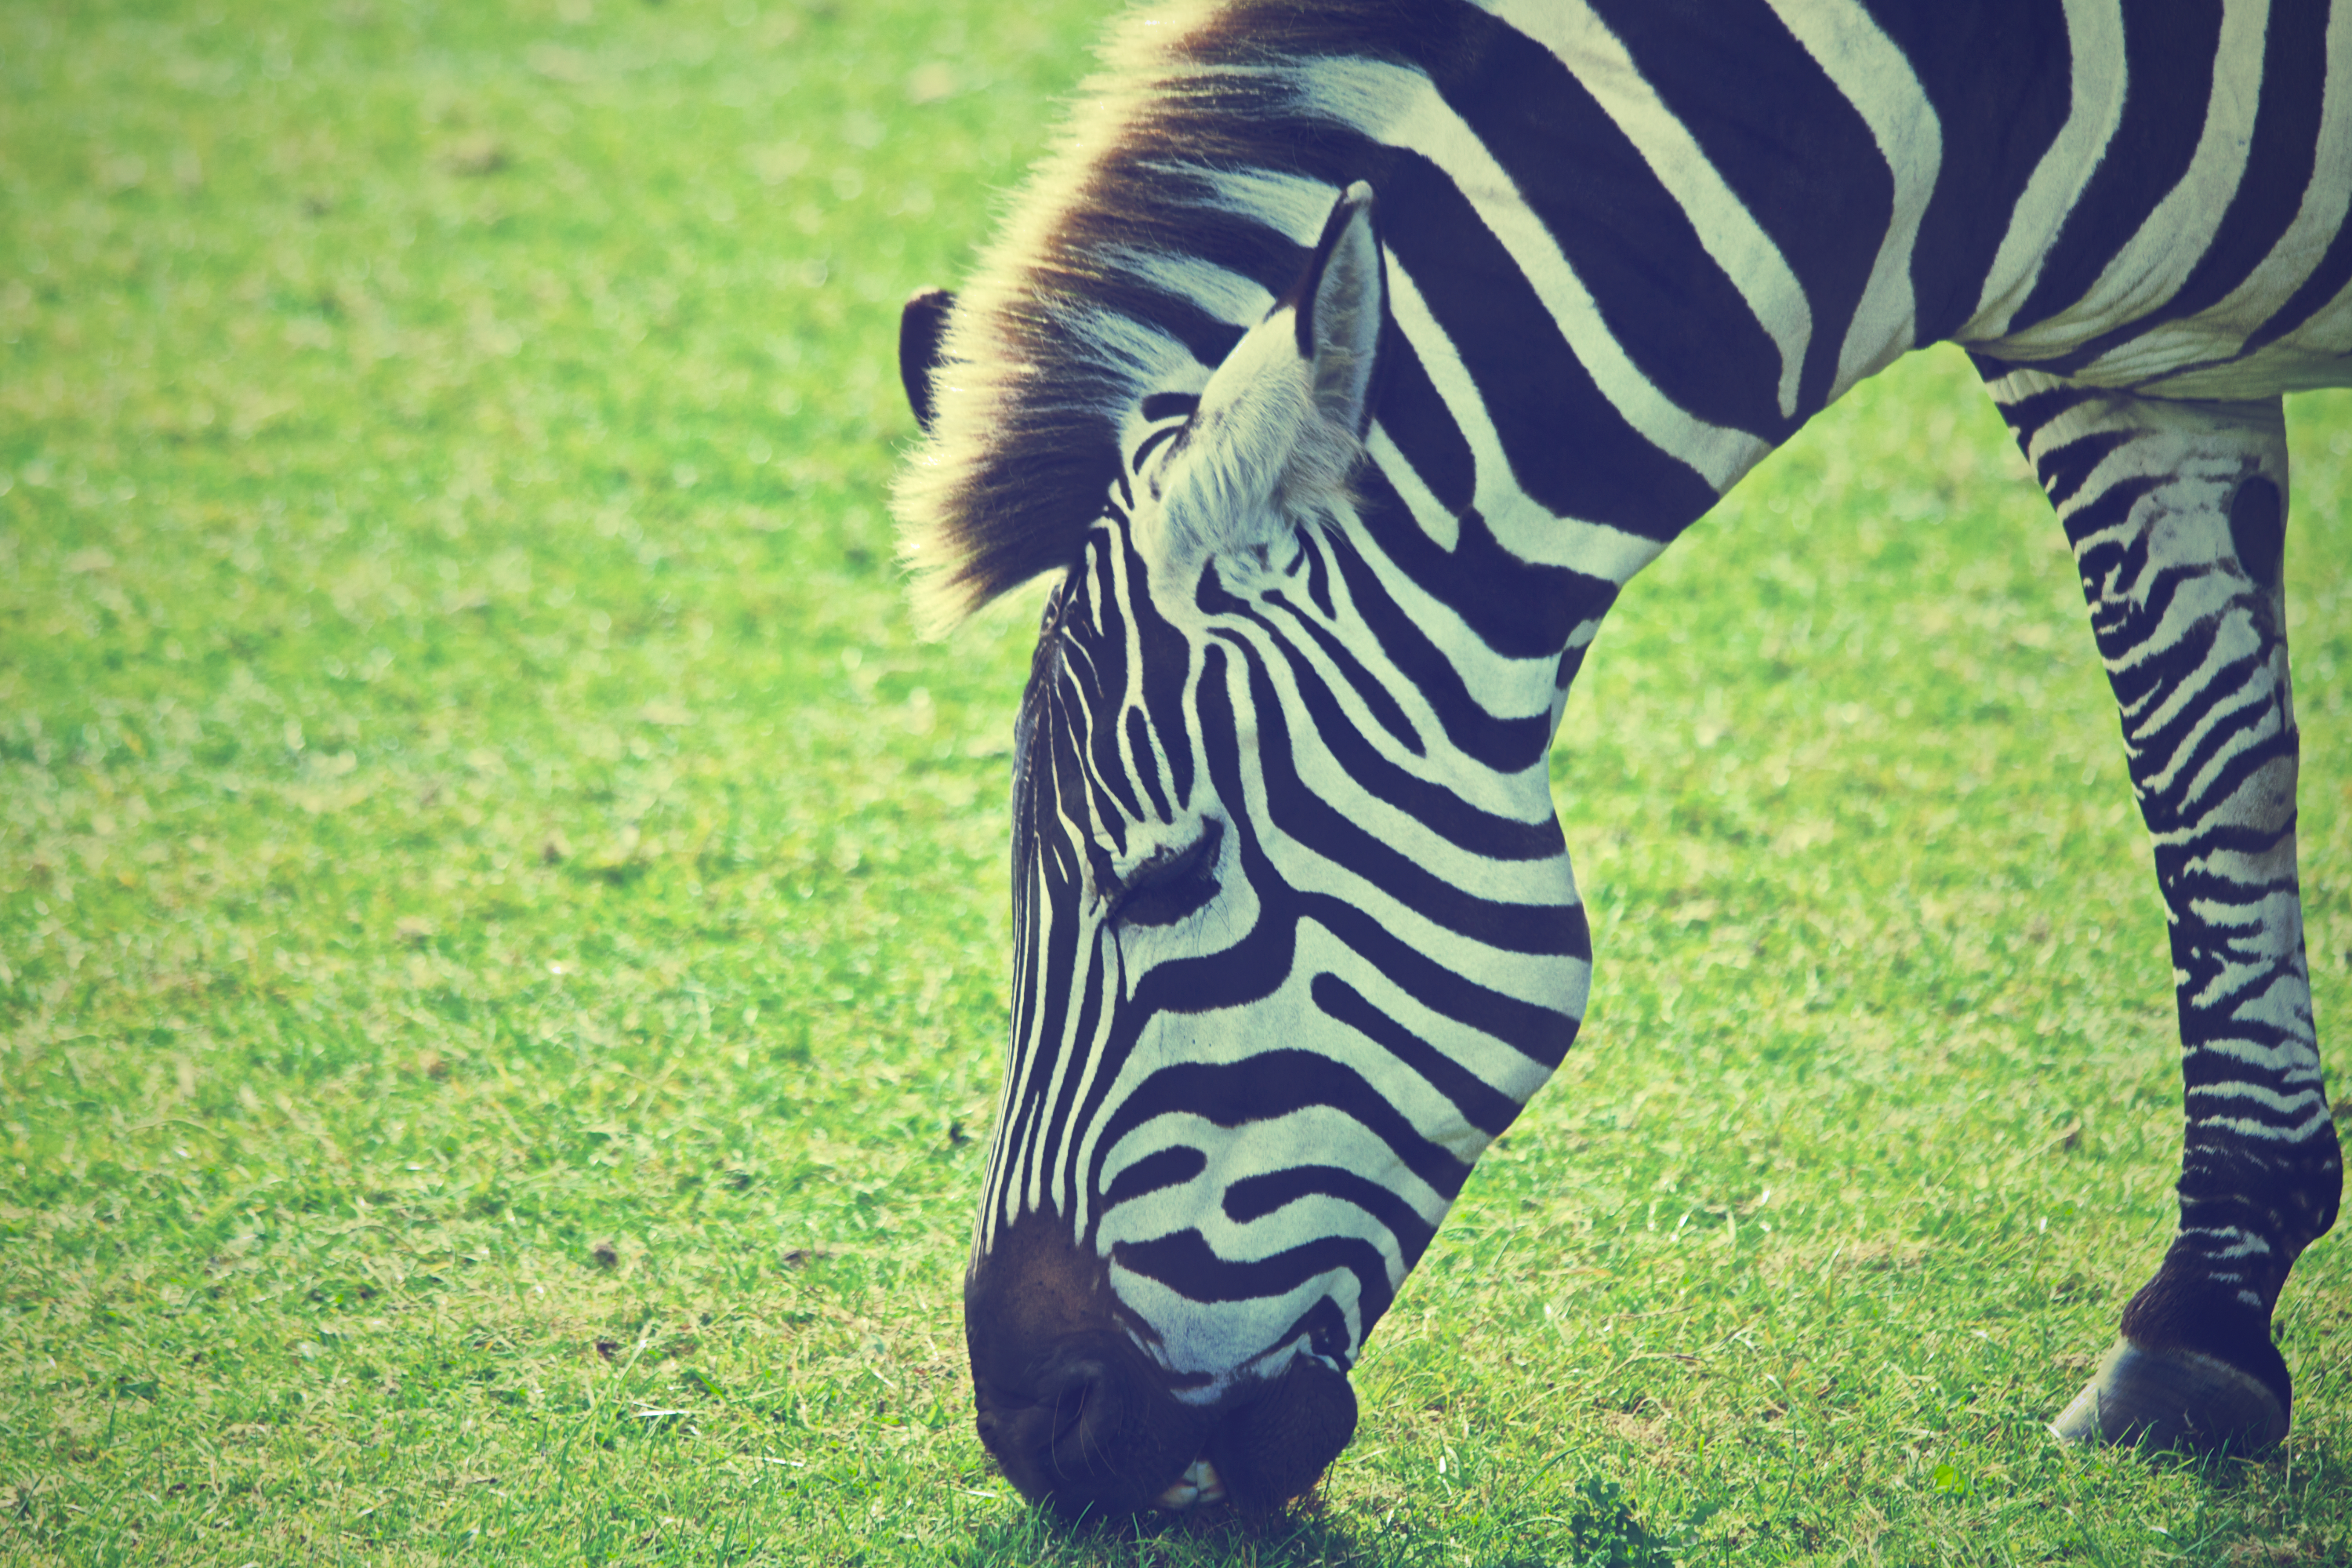 Zebra grazing, stripes, eating, white stripes, black stripes, animals, pasture